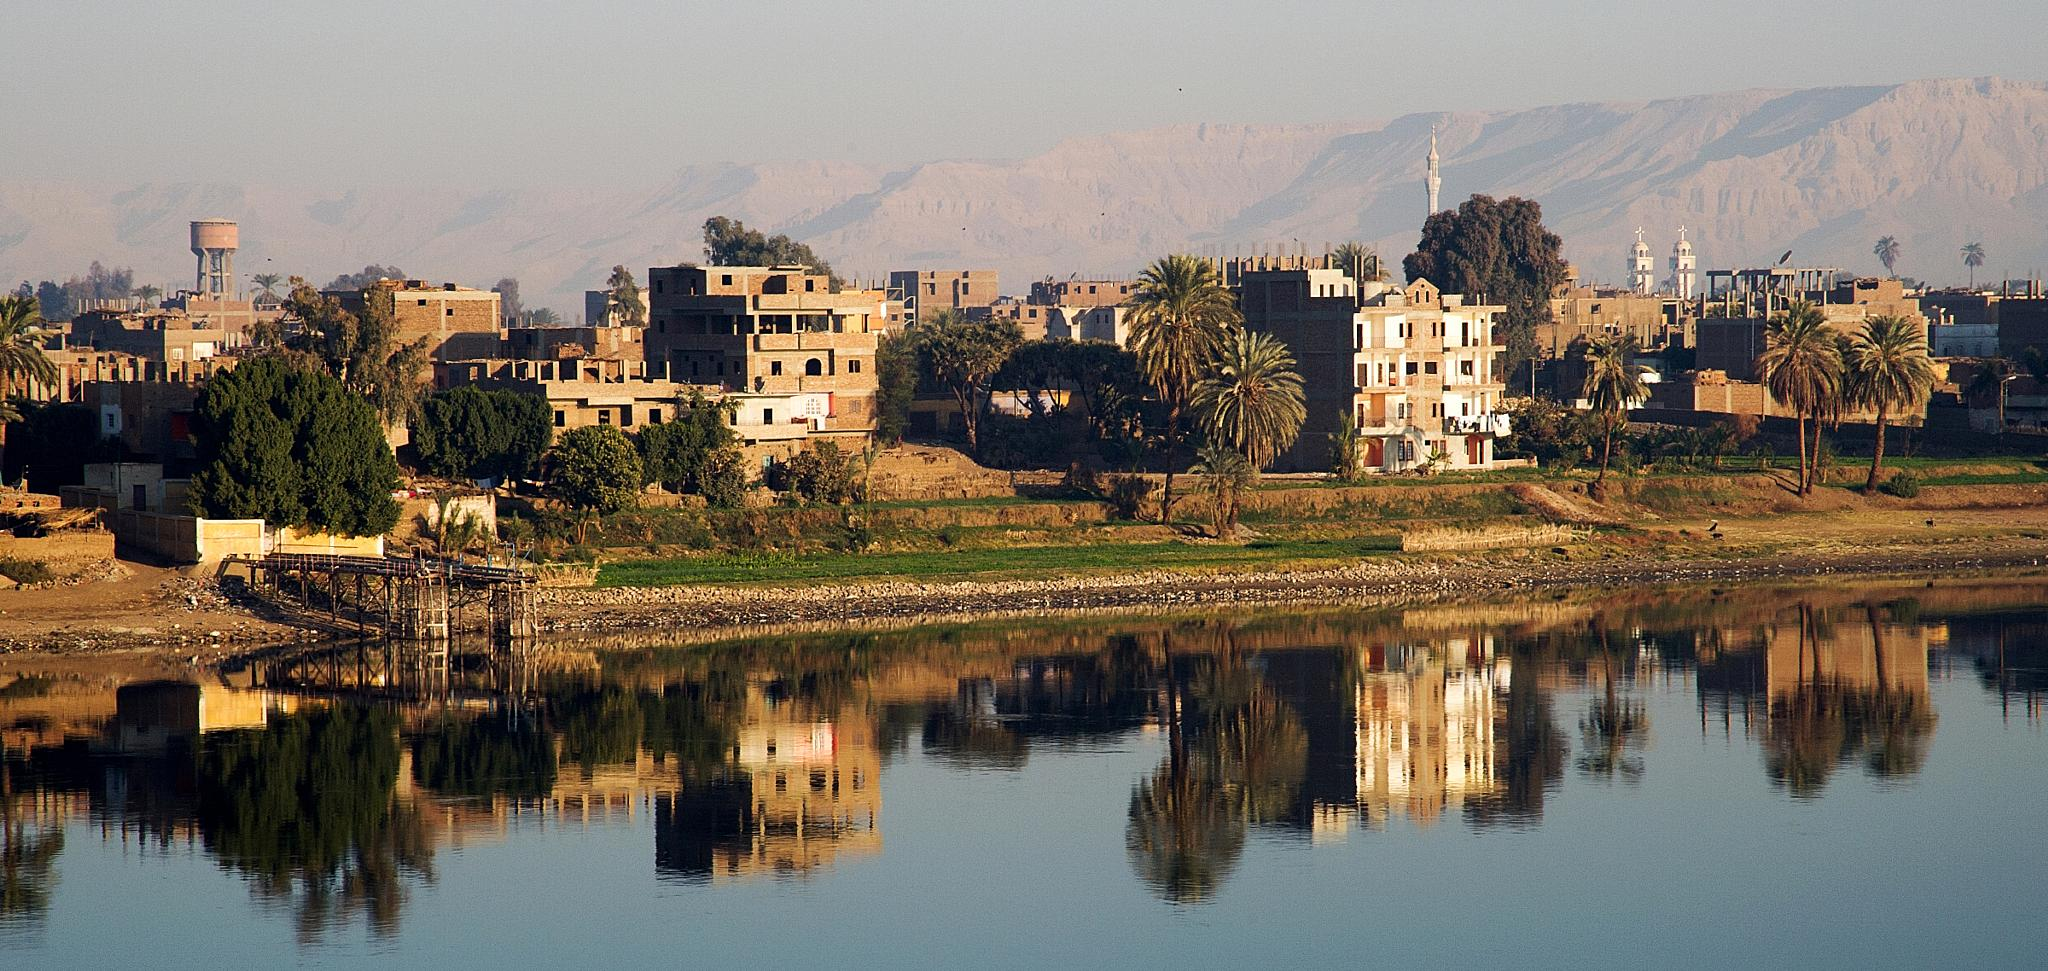 The Nile Luxor by Peter Puddiphatt